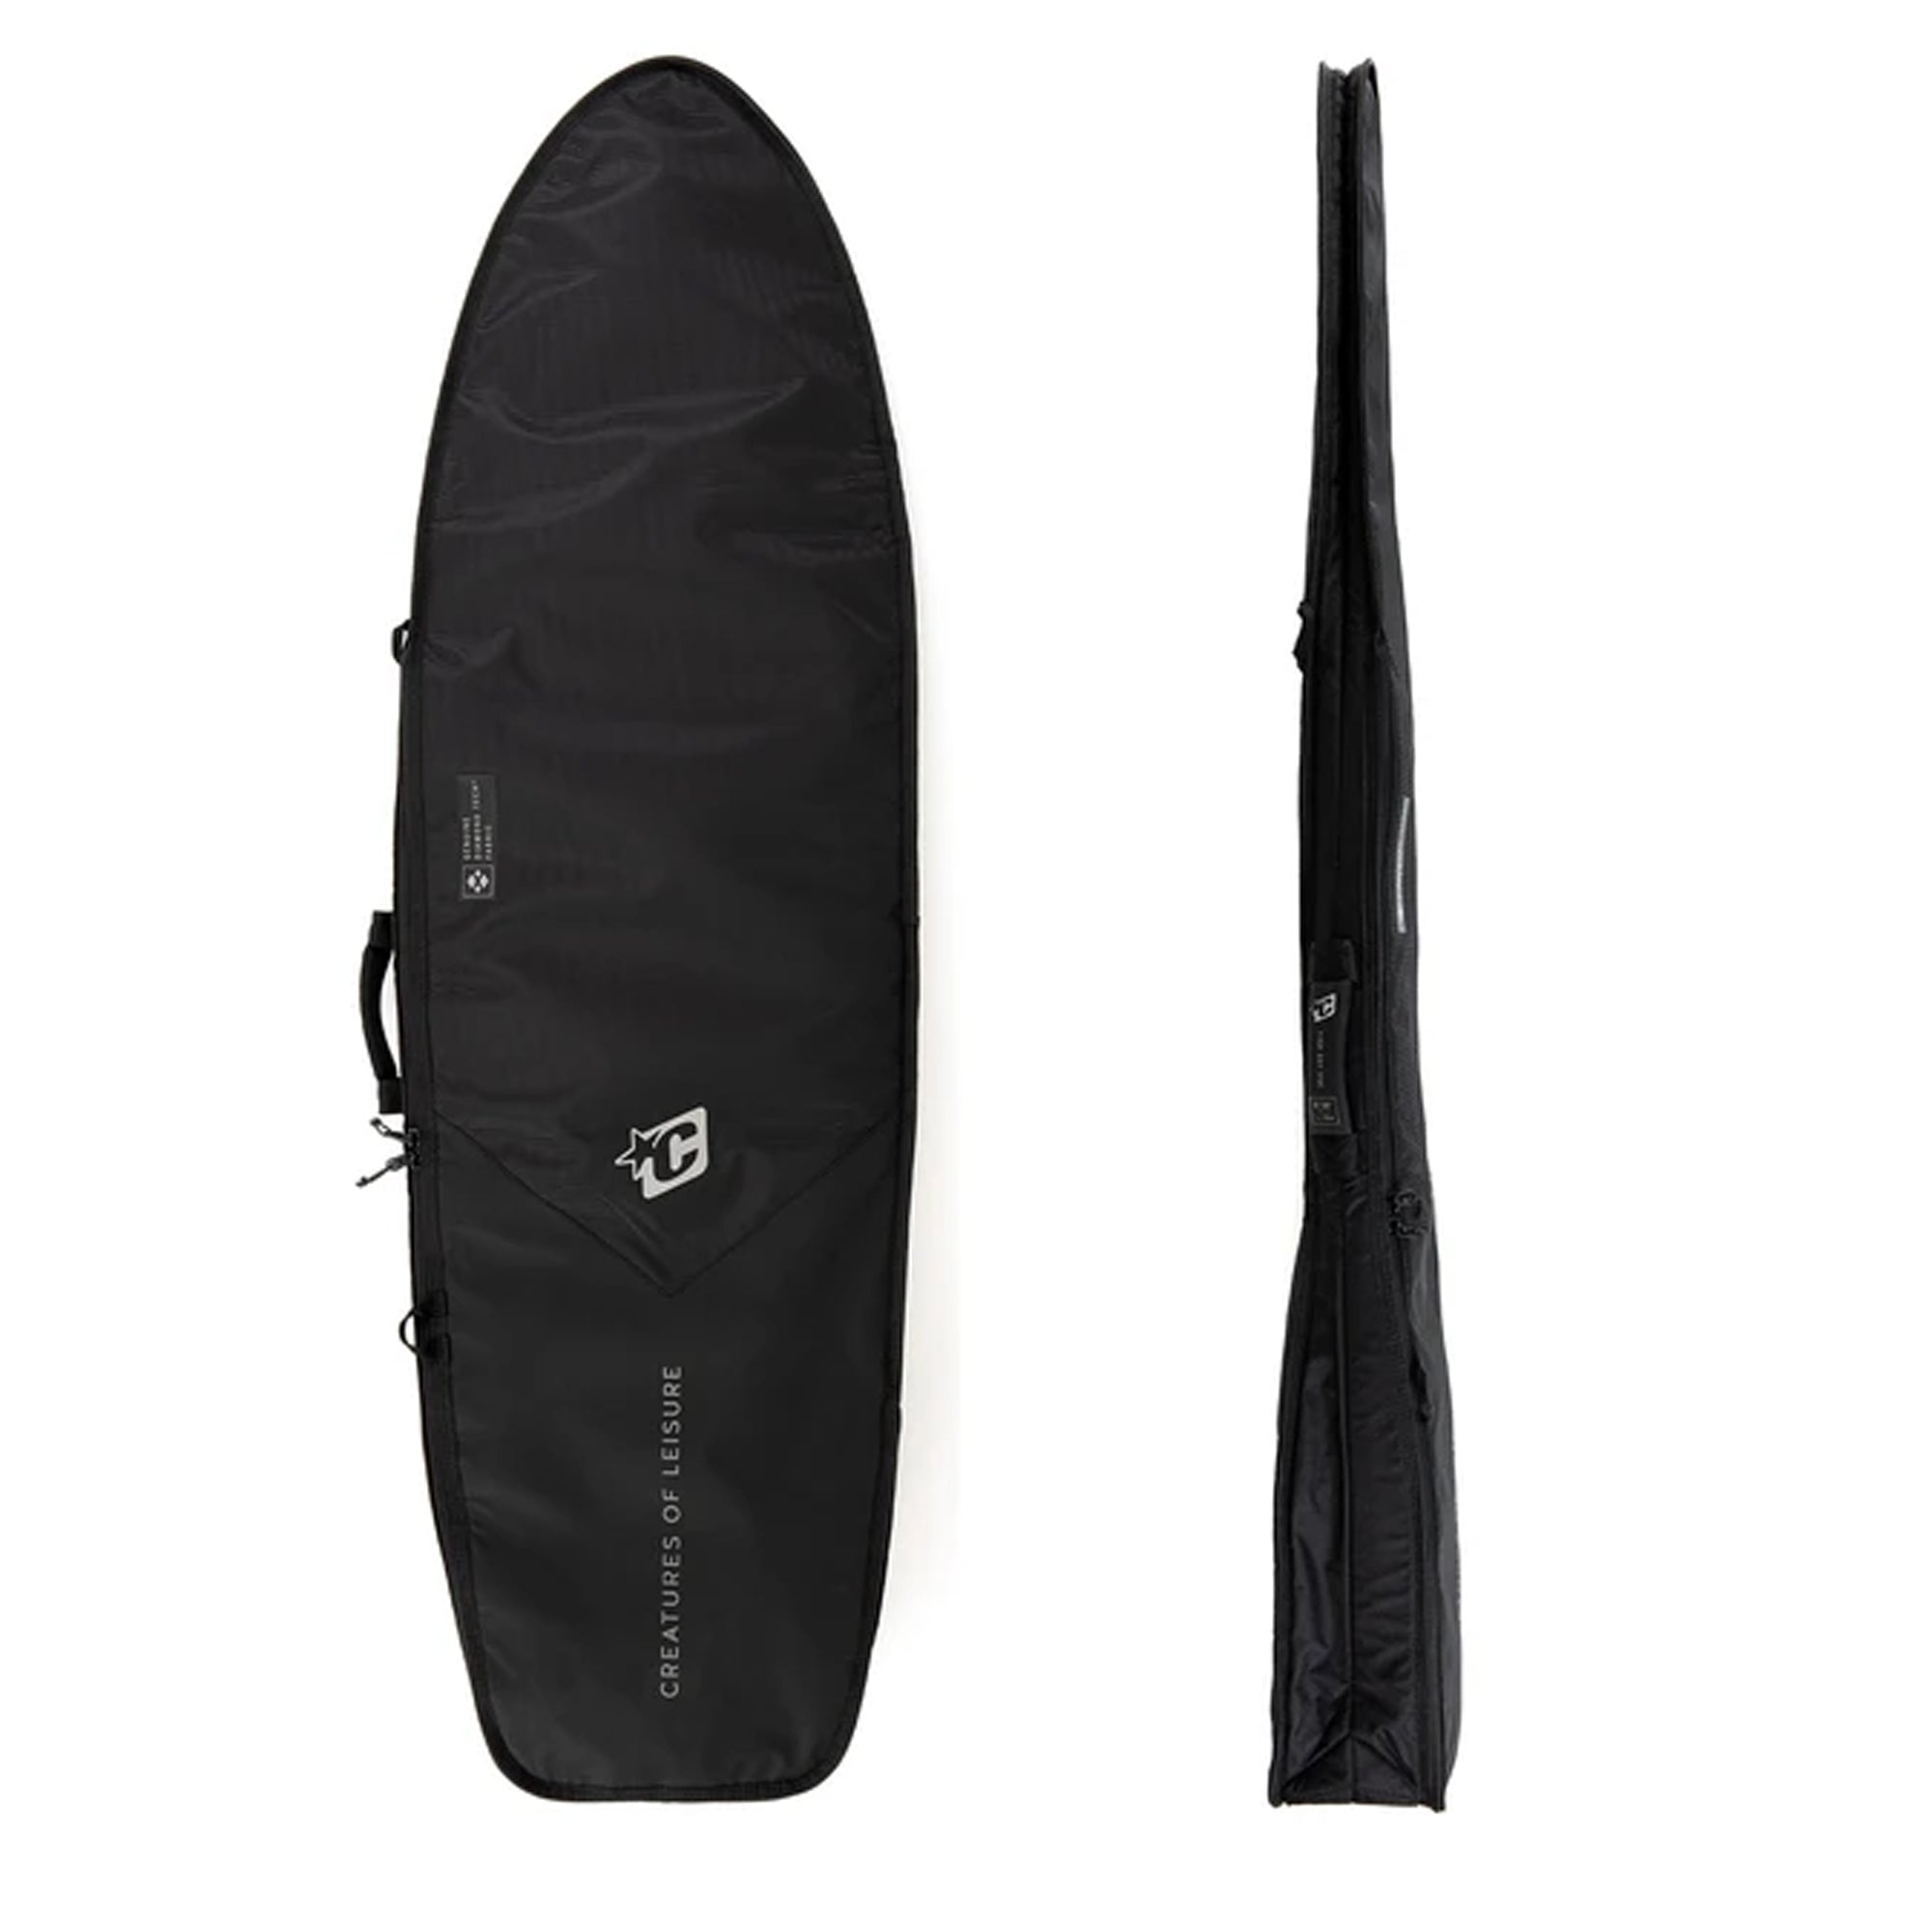 Creatures of Leisure 2021 Fish Day Use DT2.0 Surfboard Bag